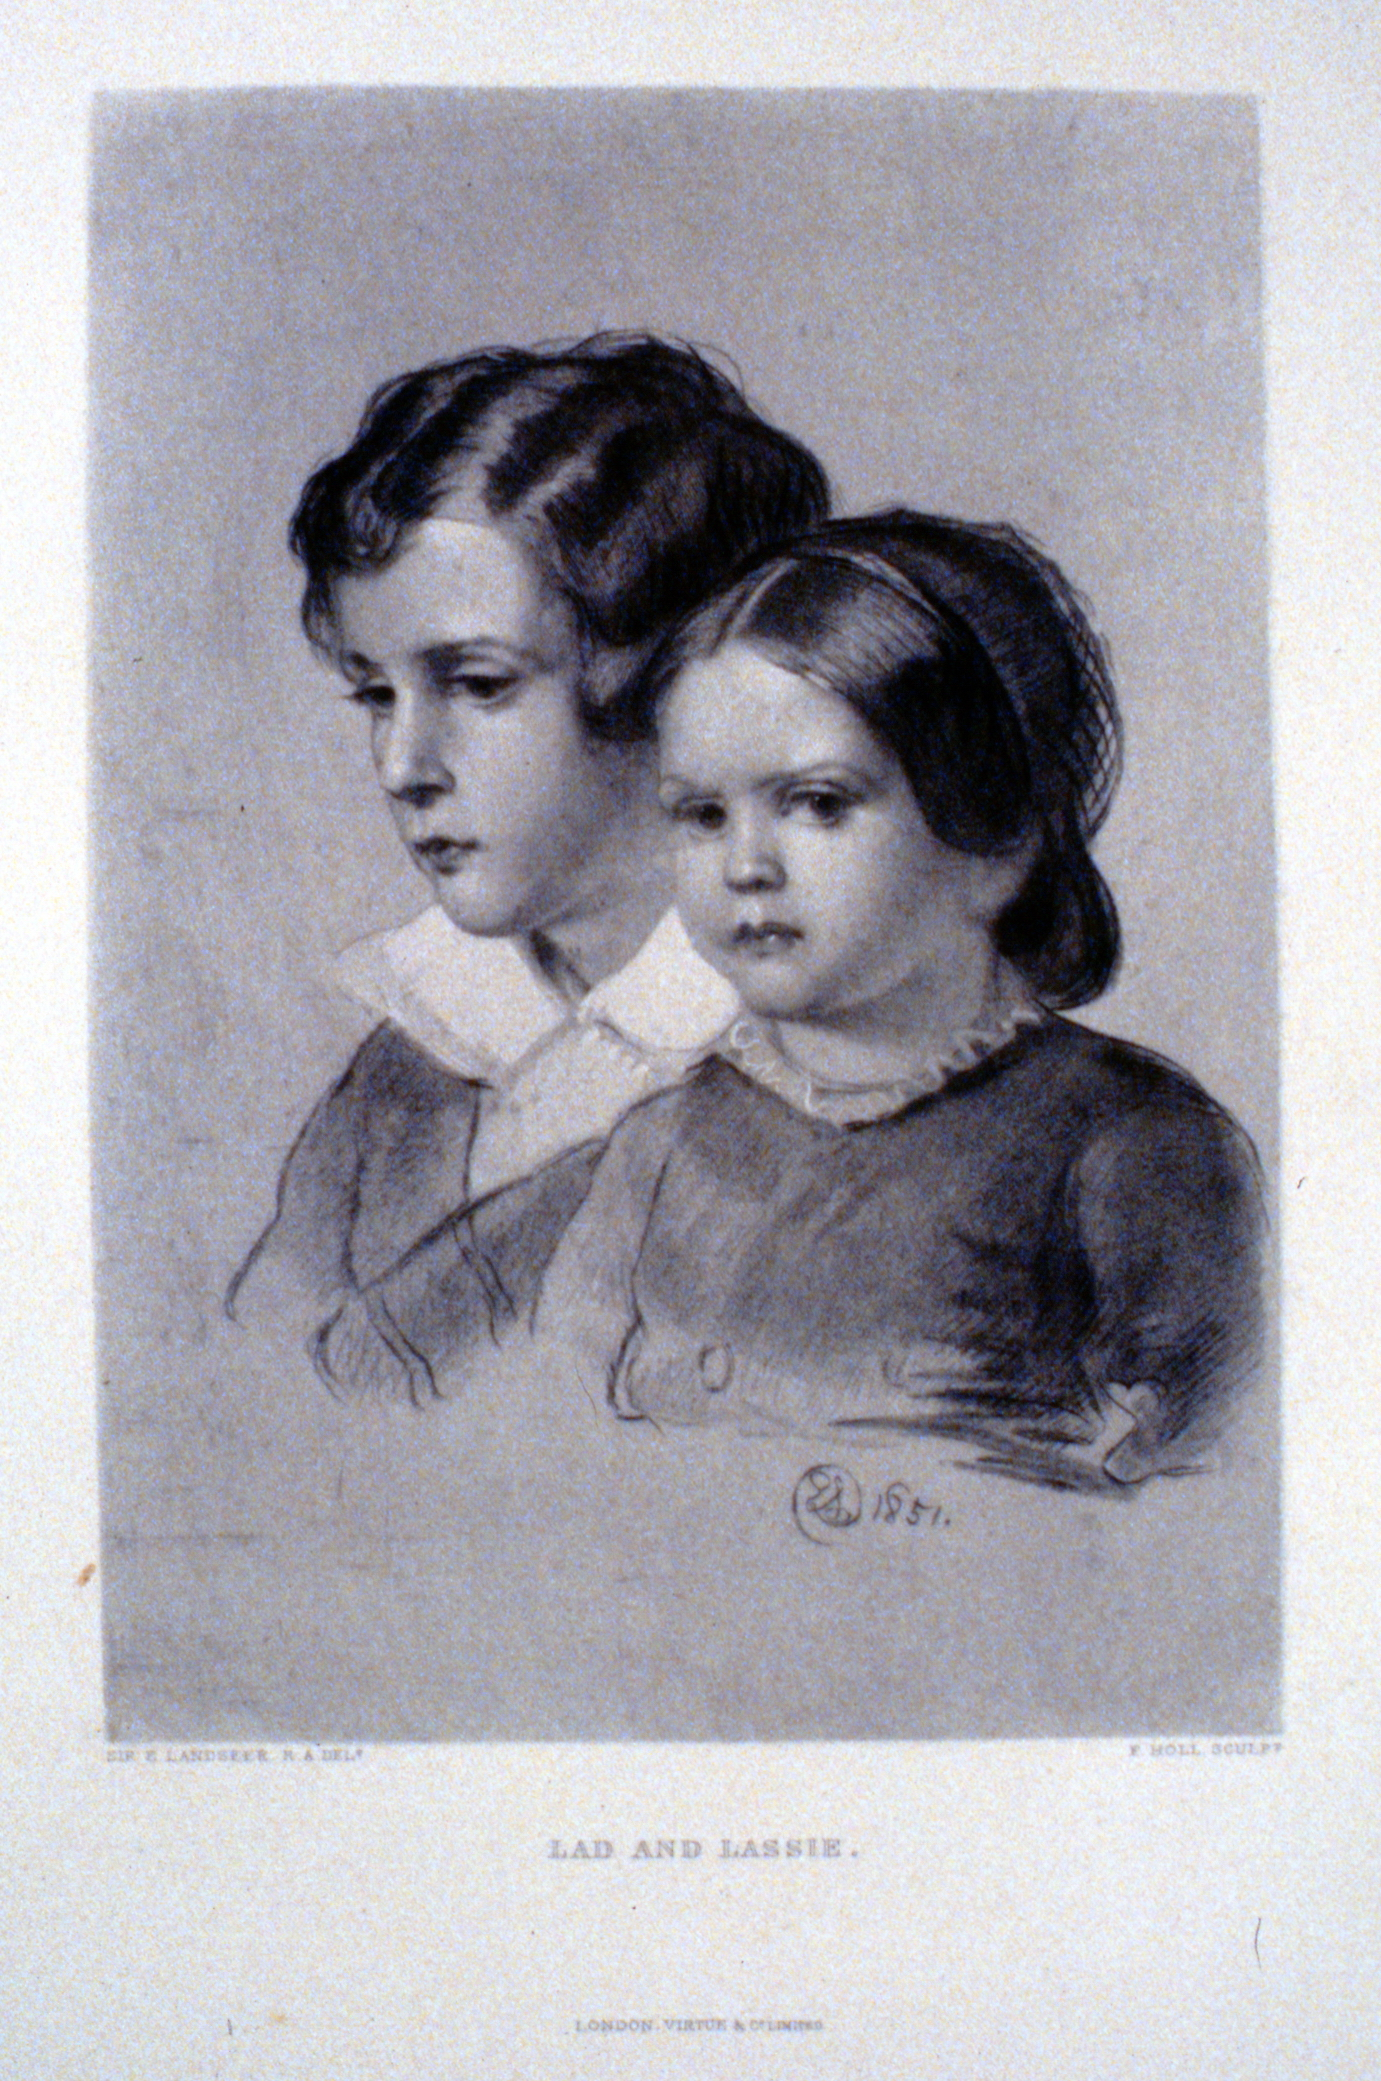 Lad and Lassie , c. late 19th Century, F. Holl, steel engraving, 24.7 cm x 17.6 cm, 1996.08.10, gift of Yvonne Adams